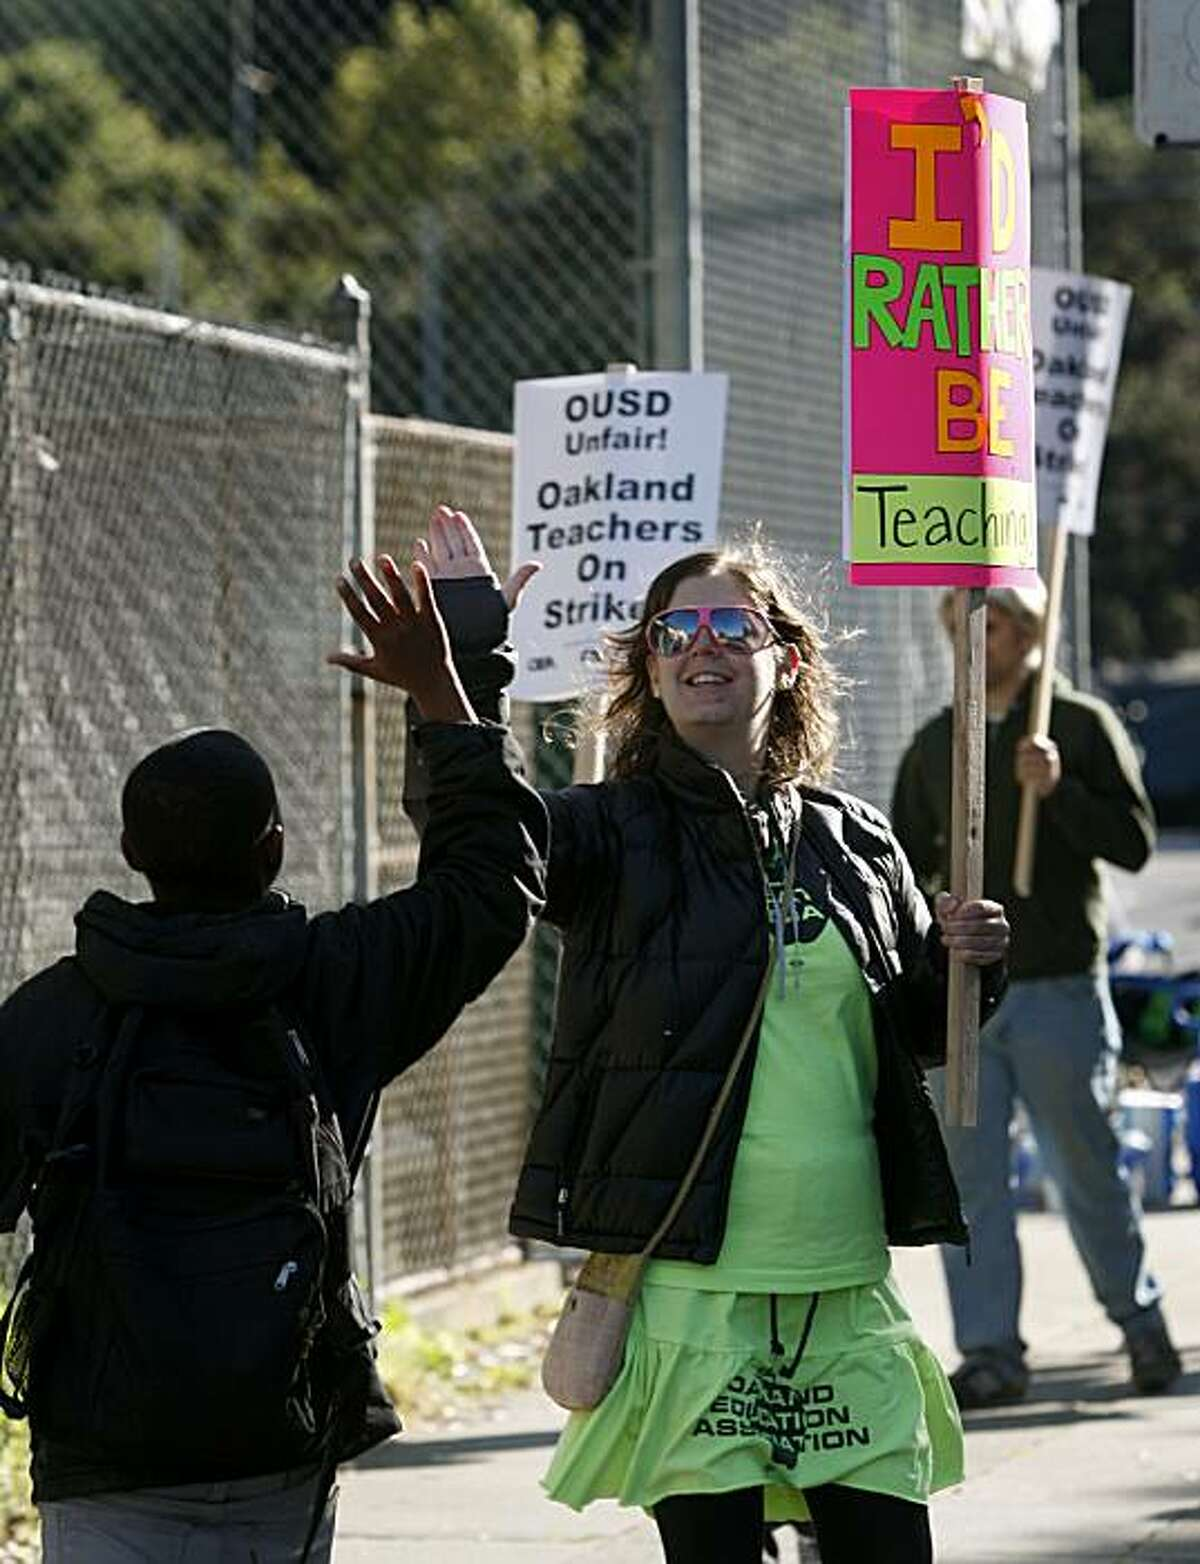 Jessie Thaler (right) who teaches English at Claremont Middle School, high-fives a student arriving for class during the one-day walkout by teachers in Oakland, Calif., on Thursday, April 29, 2010. School teachers are protesting district-wide cuts in pay and programs.